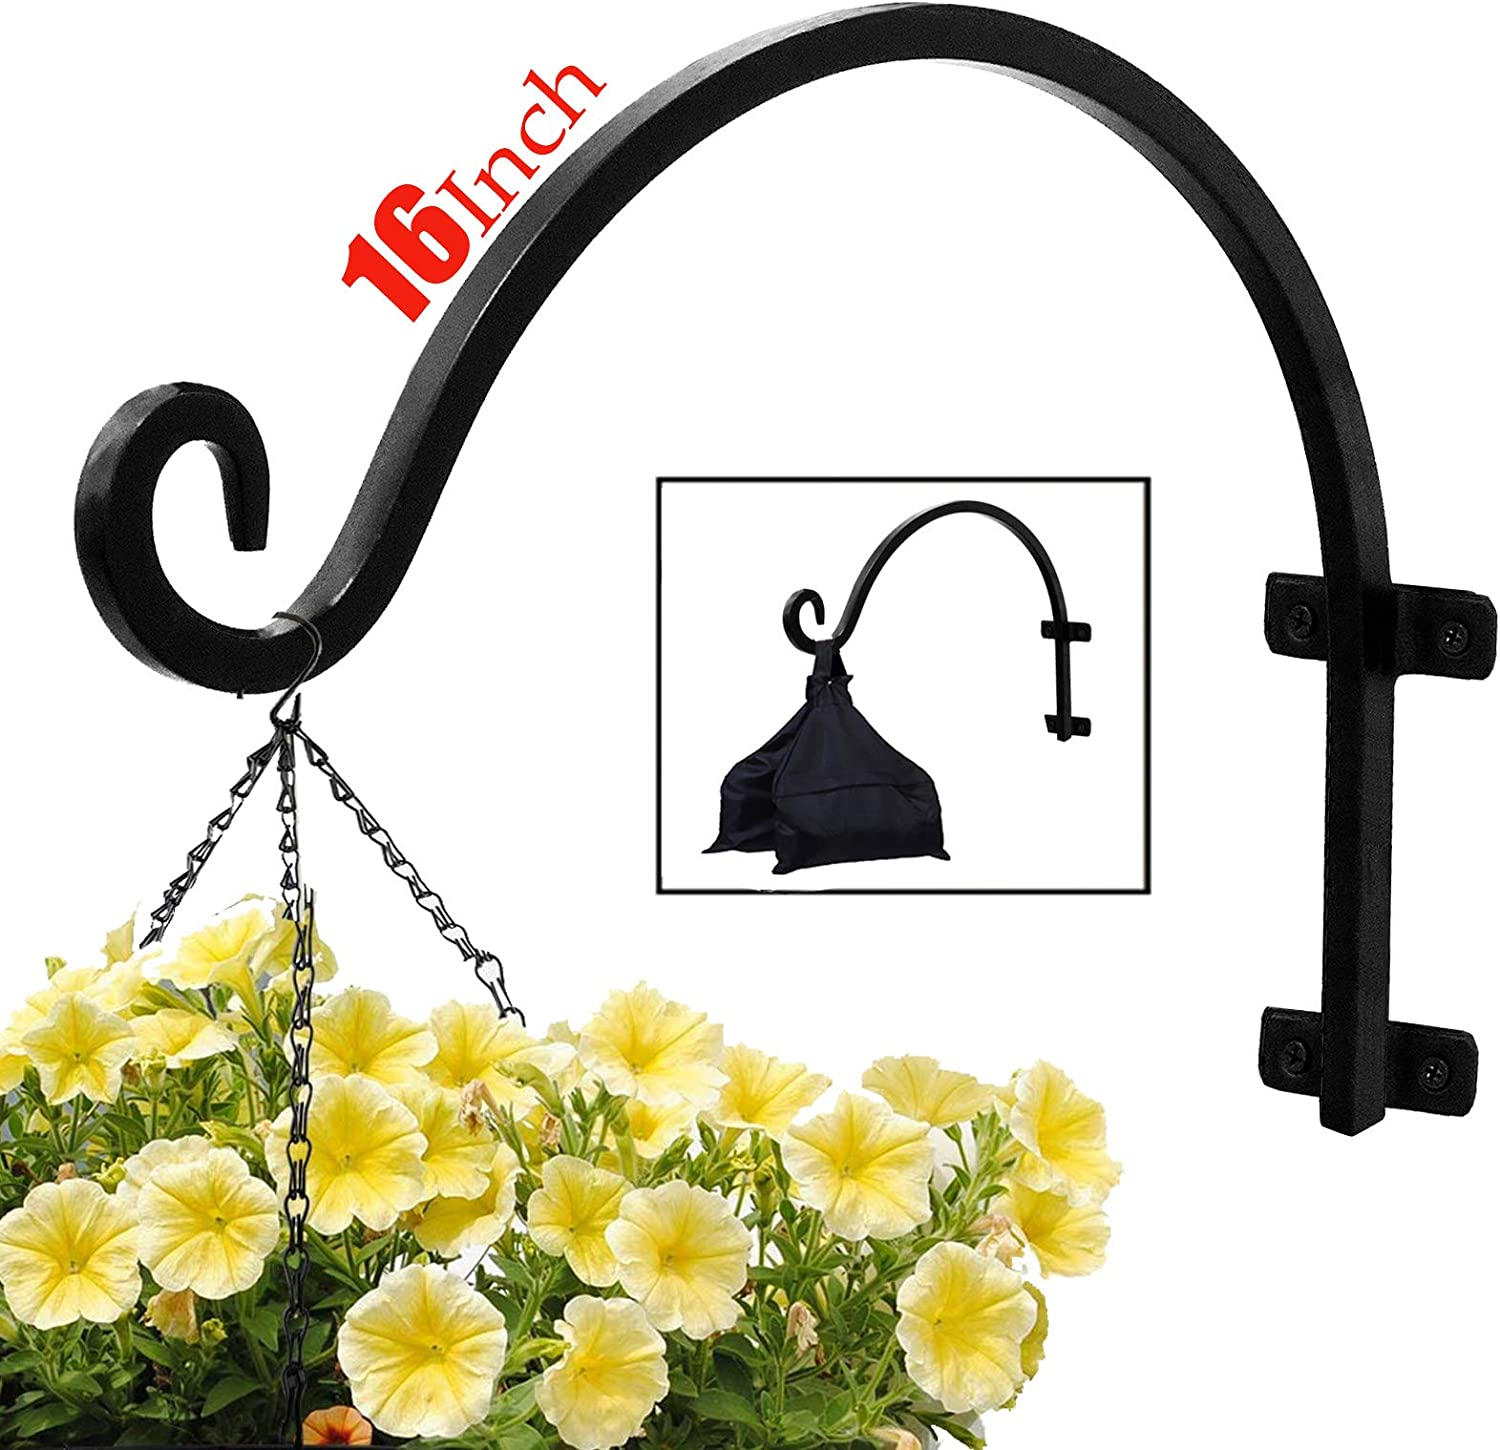 Plant Hook Hanging Basket (16inches-Screws Included) Black Durable Iron Curved Hook for Plants Lanterns Wind Chimes Heavy Duty Rust-Resistant Outdoor Hook